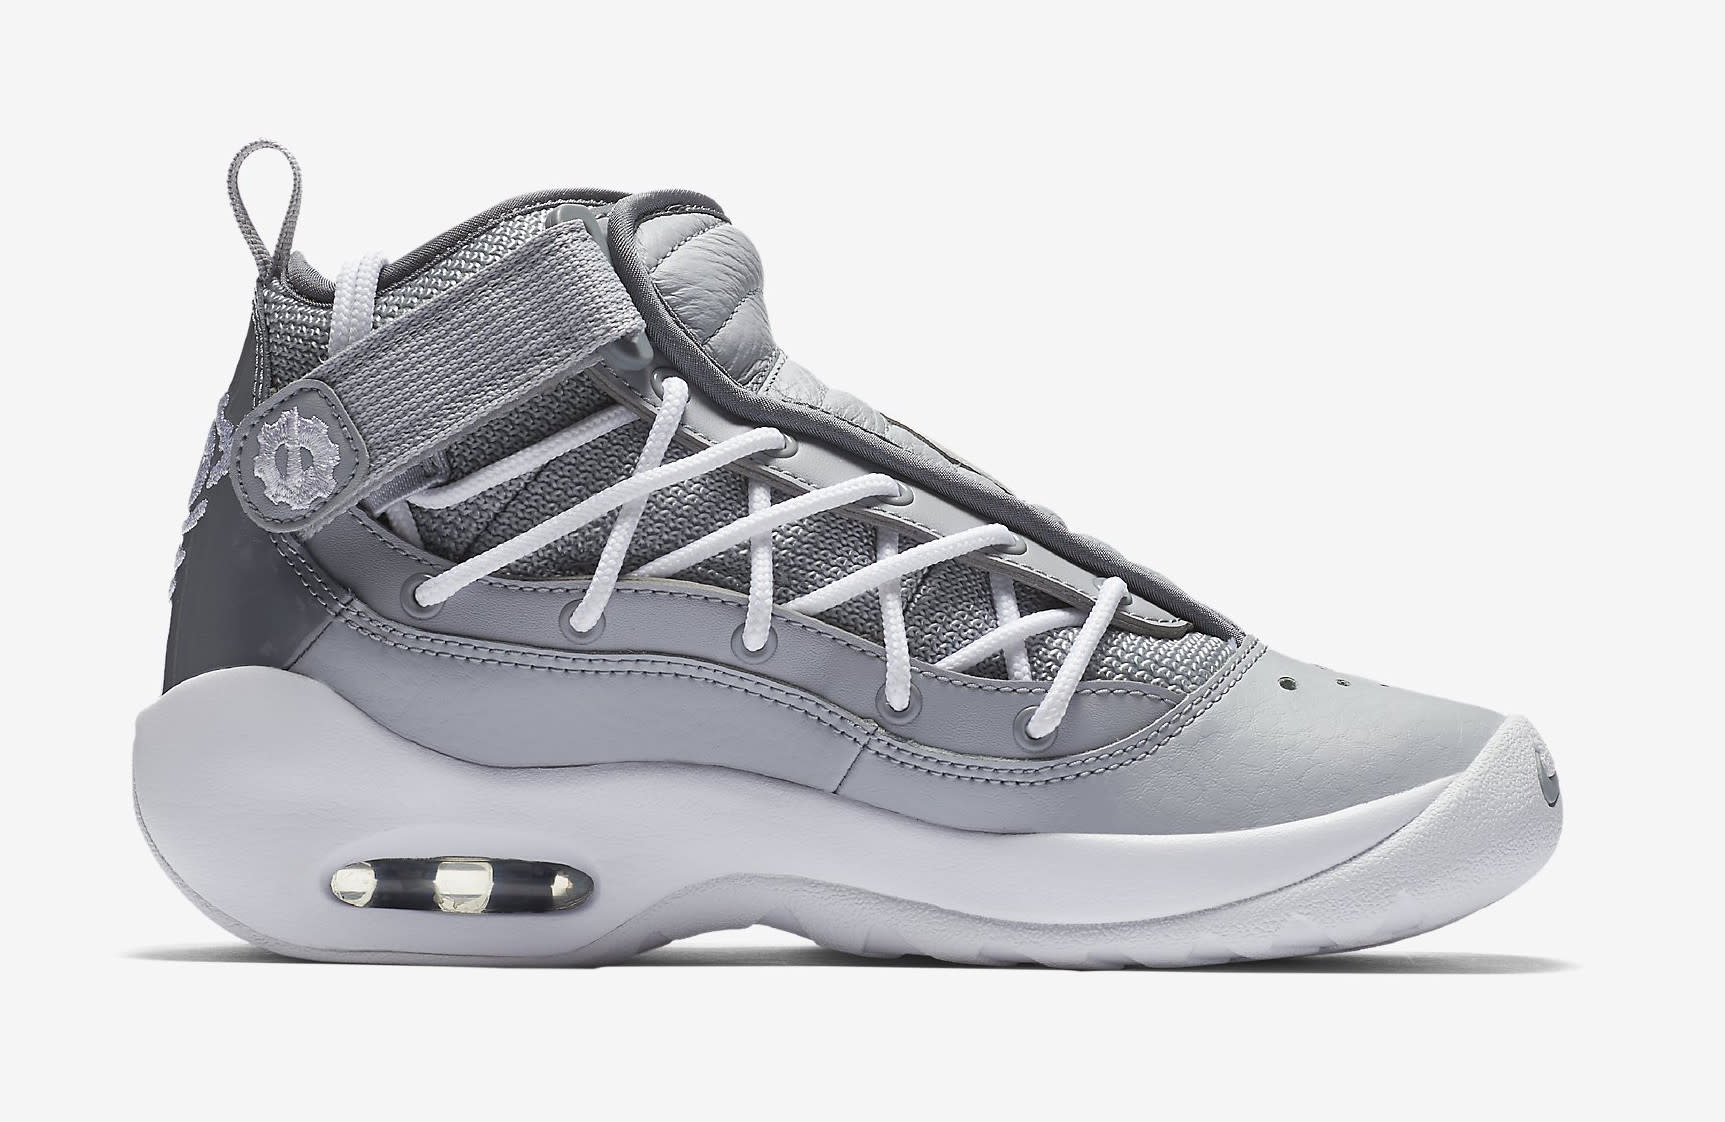 Nike Air Shake Ndestrukt 'Cool Grey' AA2888-002 (Medial)